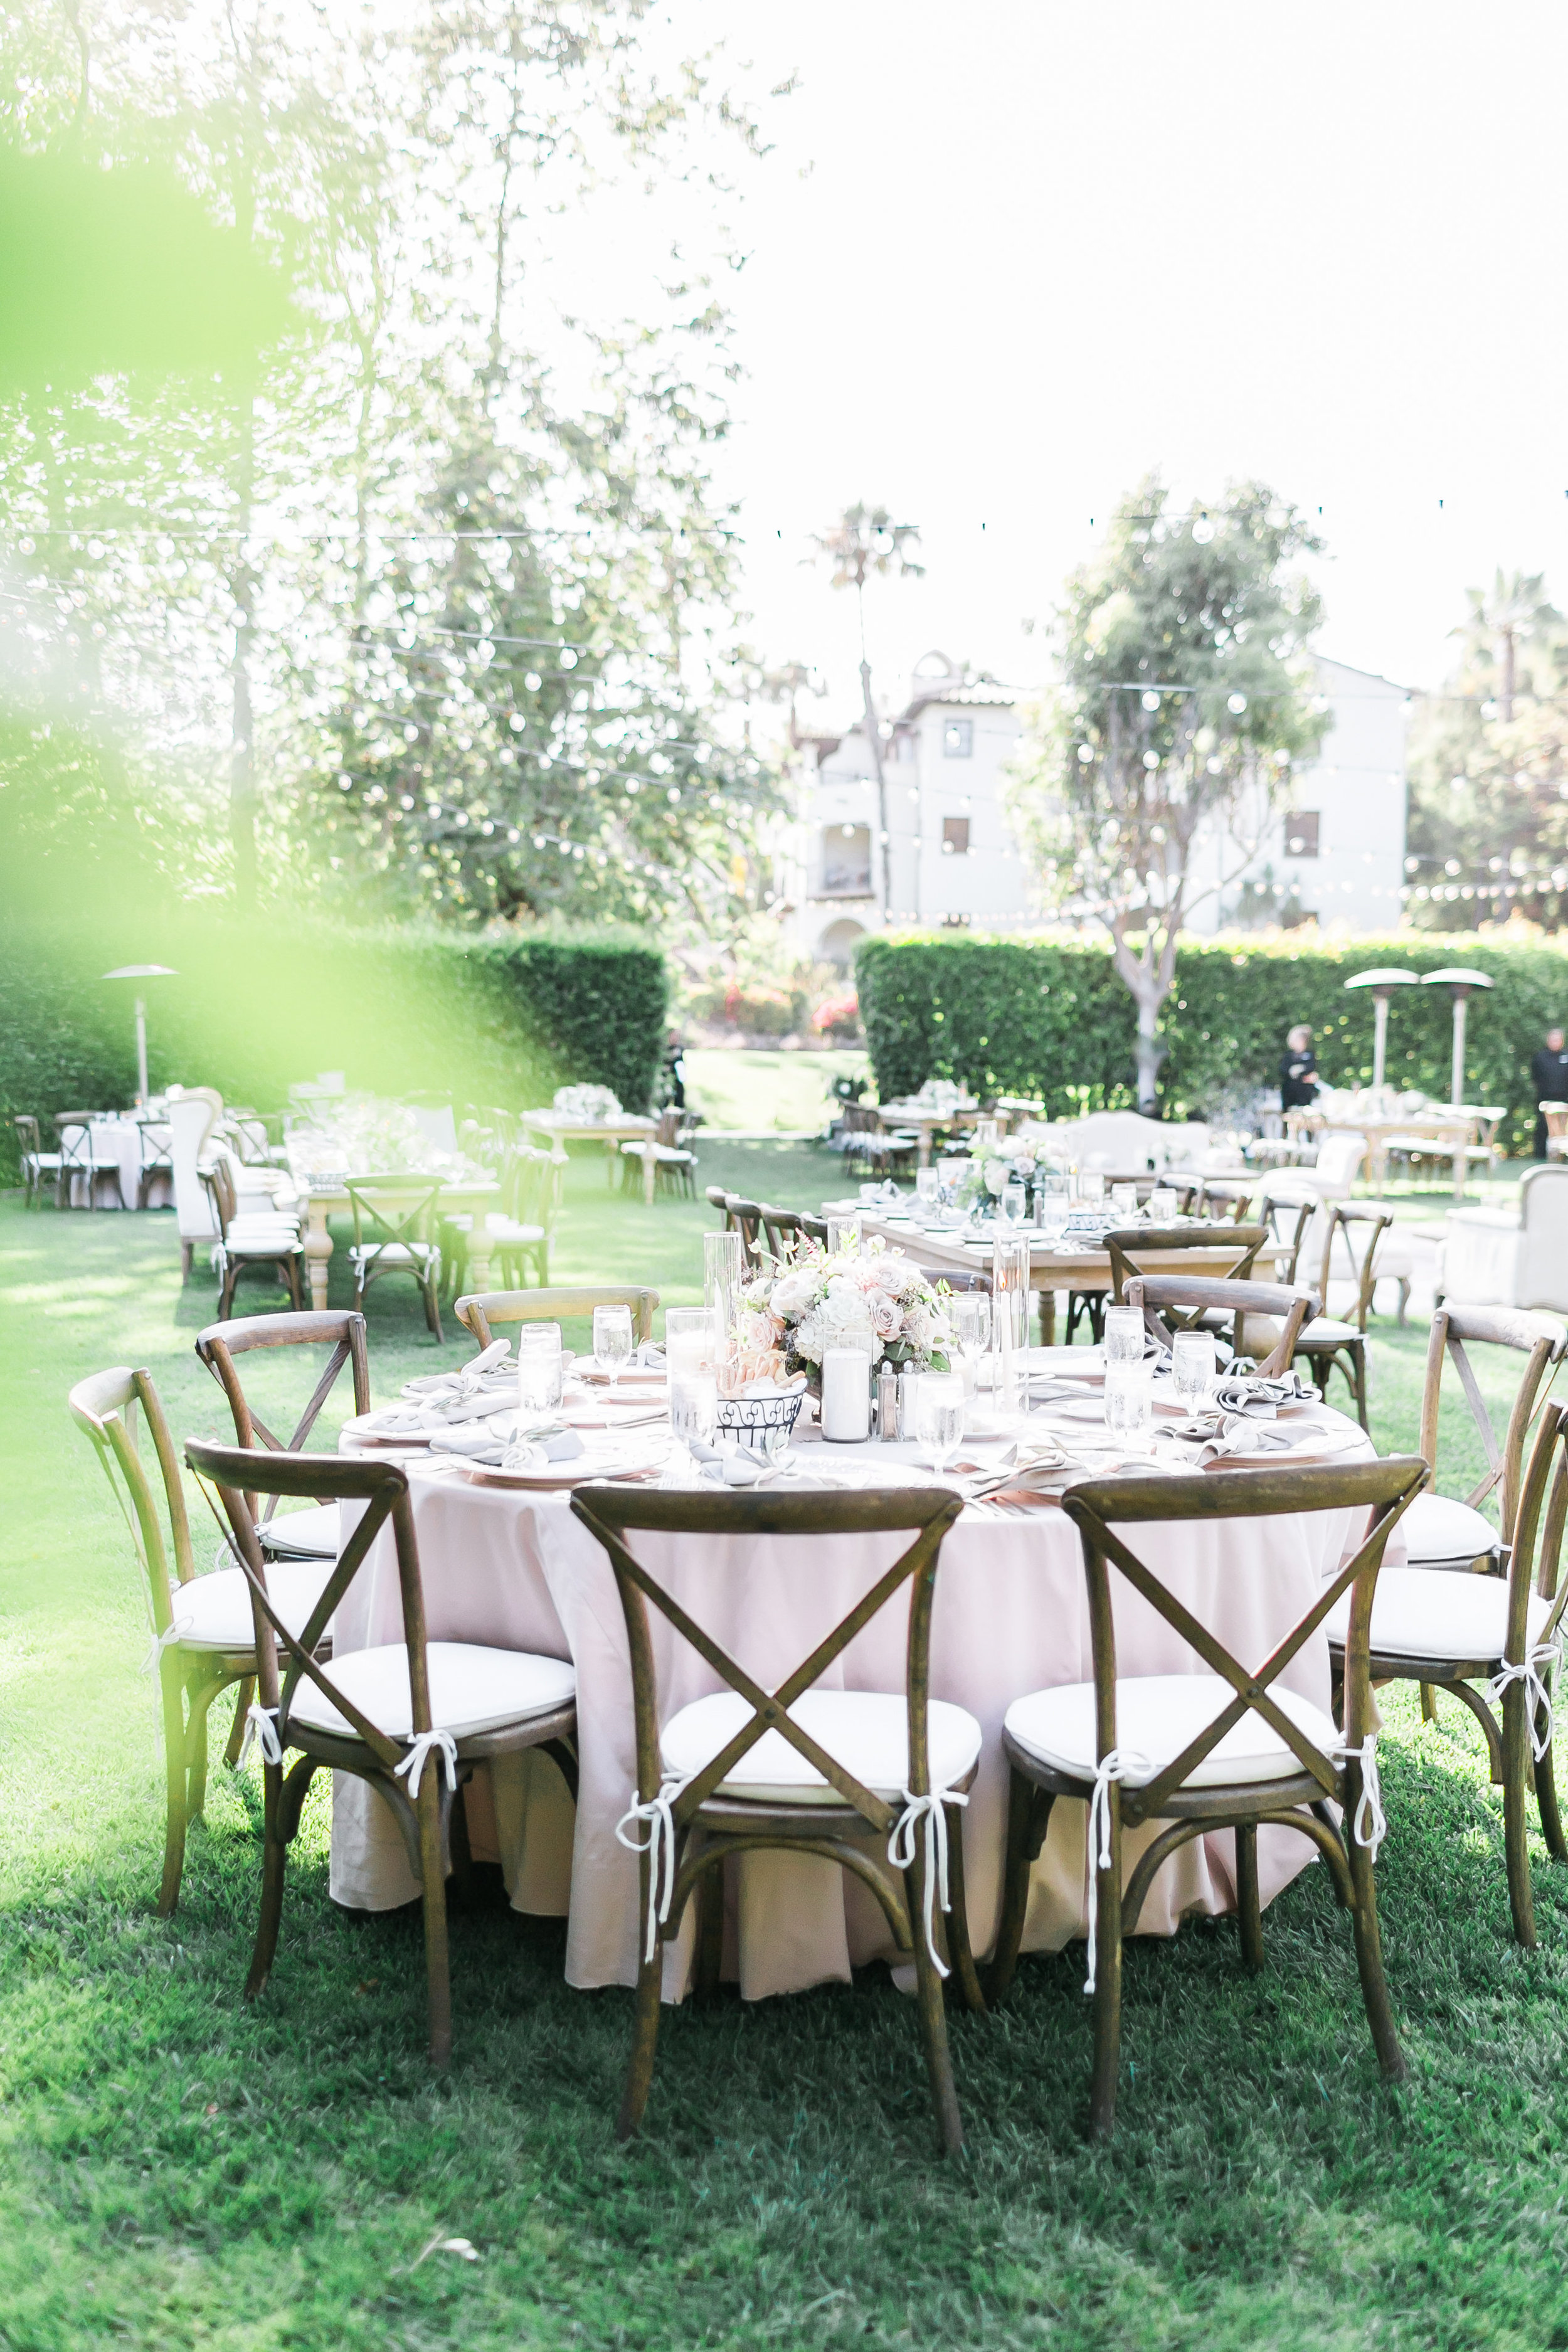 Outdoor garden wedding surrounded by hedges, with wooden tables and chairs.     Destination Wedding Planner  ANDREA EPPOLITO EVENTS  · Images by  J.ANNE P  HOTOOGRAPHY  · Video  HOO FILMS  · Venue Ritz Carlton Bacara Santa Barbara ·Gown MONIQUE LHULLIER ·Bridesmaids Dresses  SHOW ME YOUR MUMU ·Stationery  SHE PAPERIE ·Bride's Shoes  BADGLEY MISCHKA ·Hair and Makeup  TEAM HAIR AND MAKEUP · Floral  BLUE MAGNOLIA ·Linen  LA TAVOLA ·Decor Rentals  TENT MERCHANT ·Calligraphy  EBB ·Lighting  FIVE STAR AV ·Ice Cream Station  MCCONNELL'S ICE CREAM